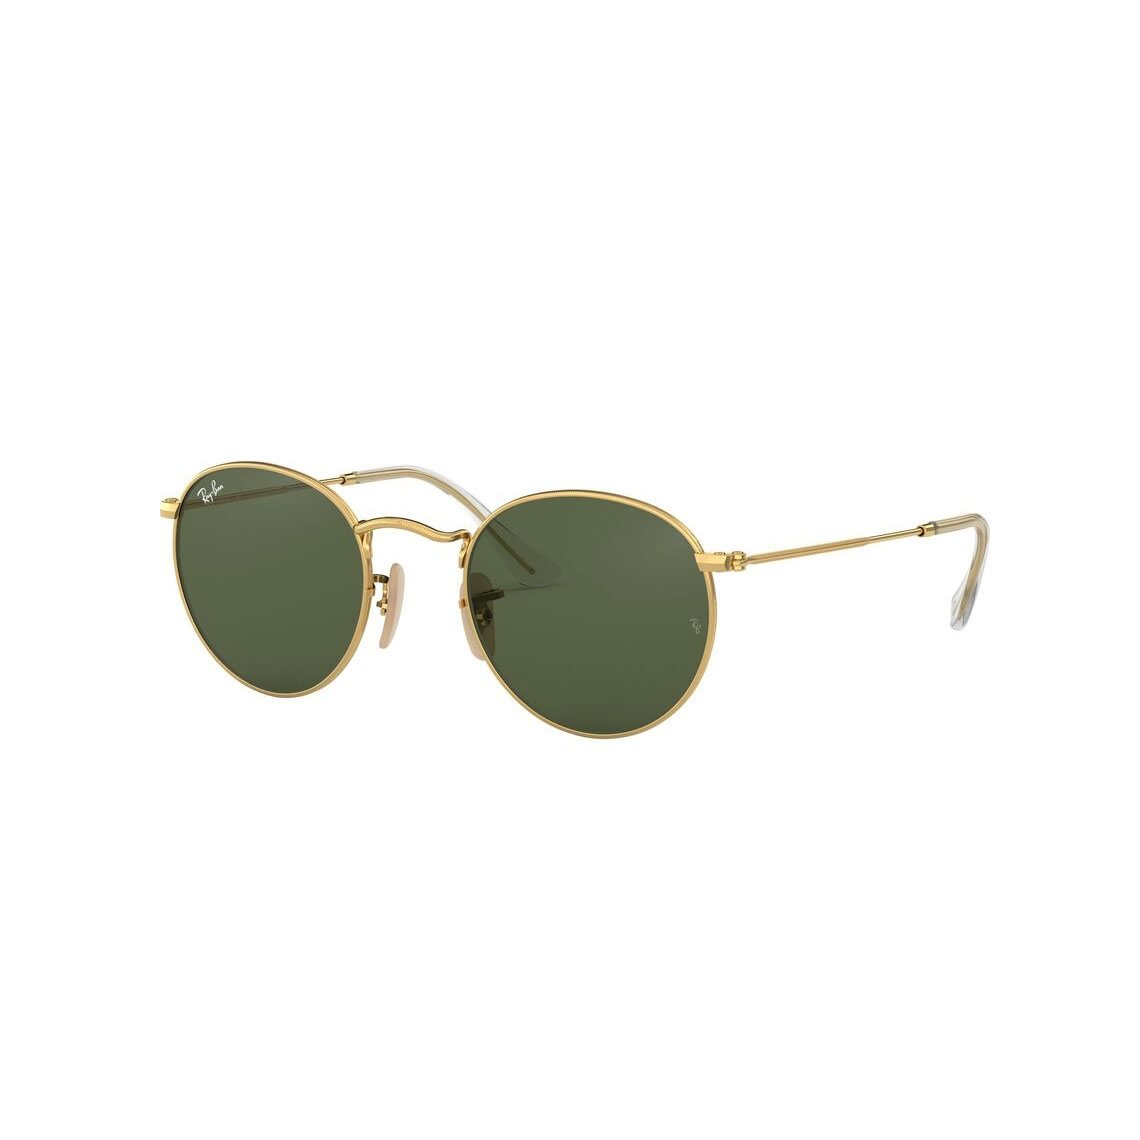 Ray-Ban Round metal RB3447N 001 50